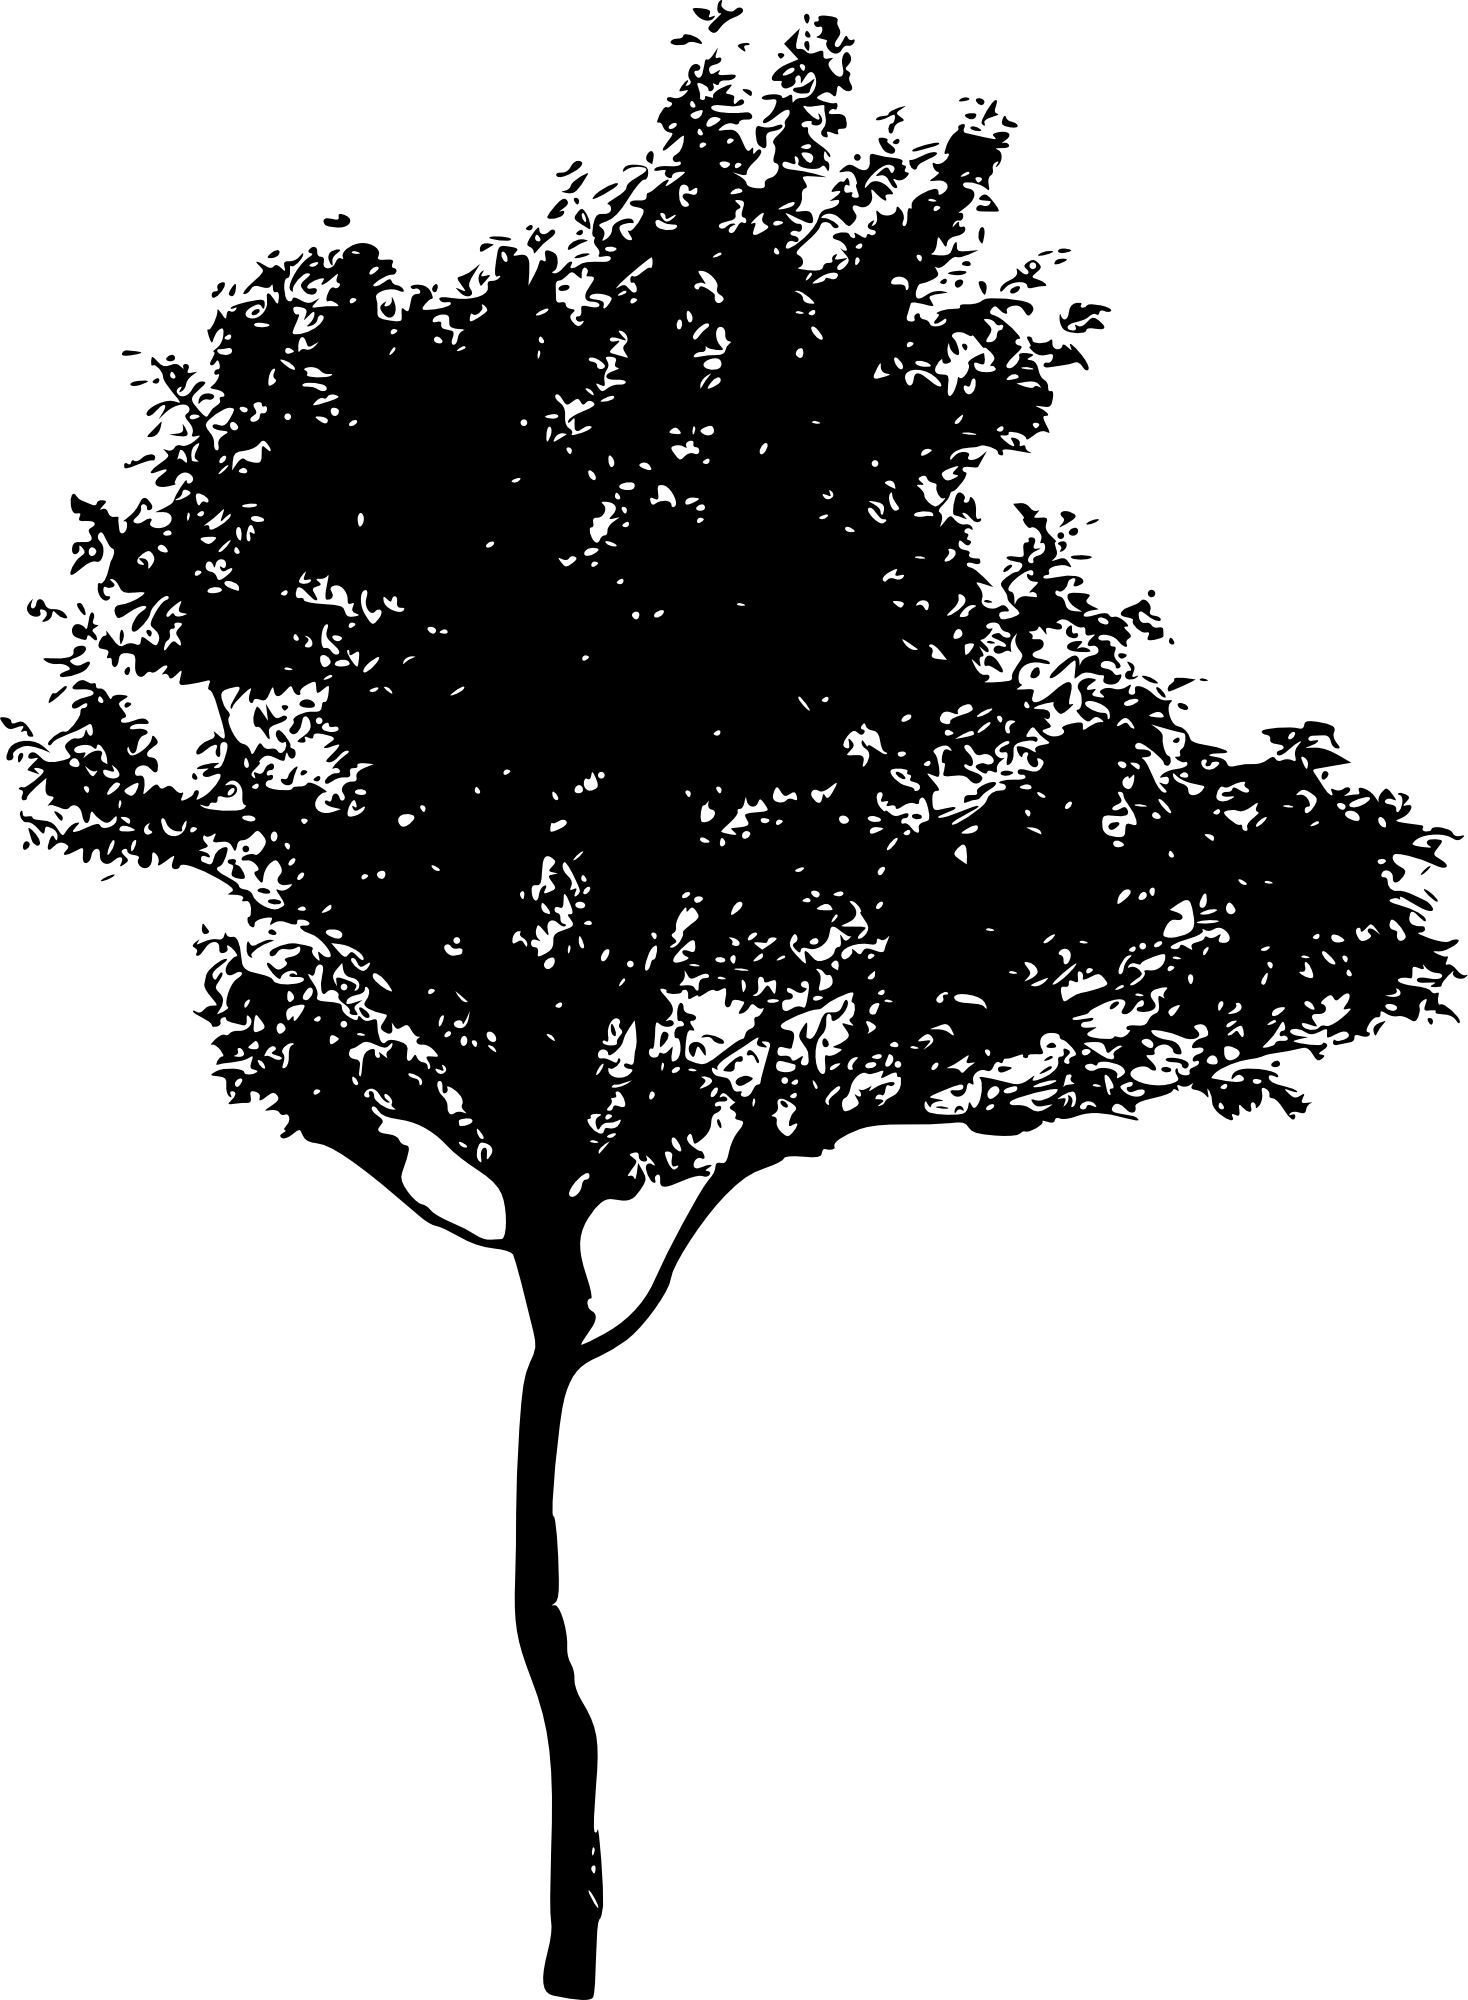 Forest silhouette png. Tree silhouettes transparent